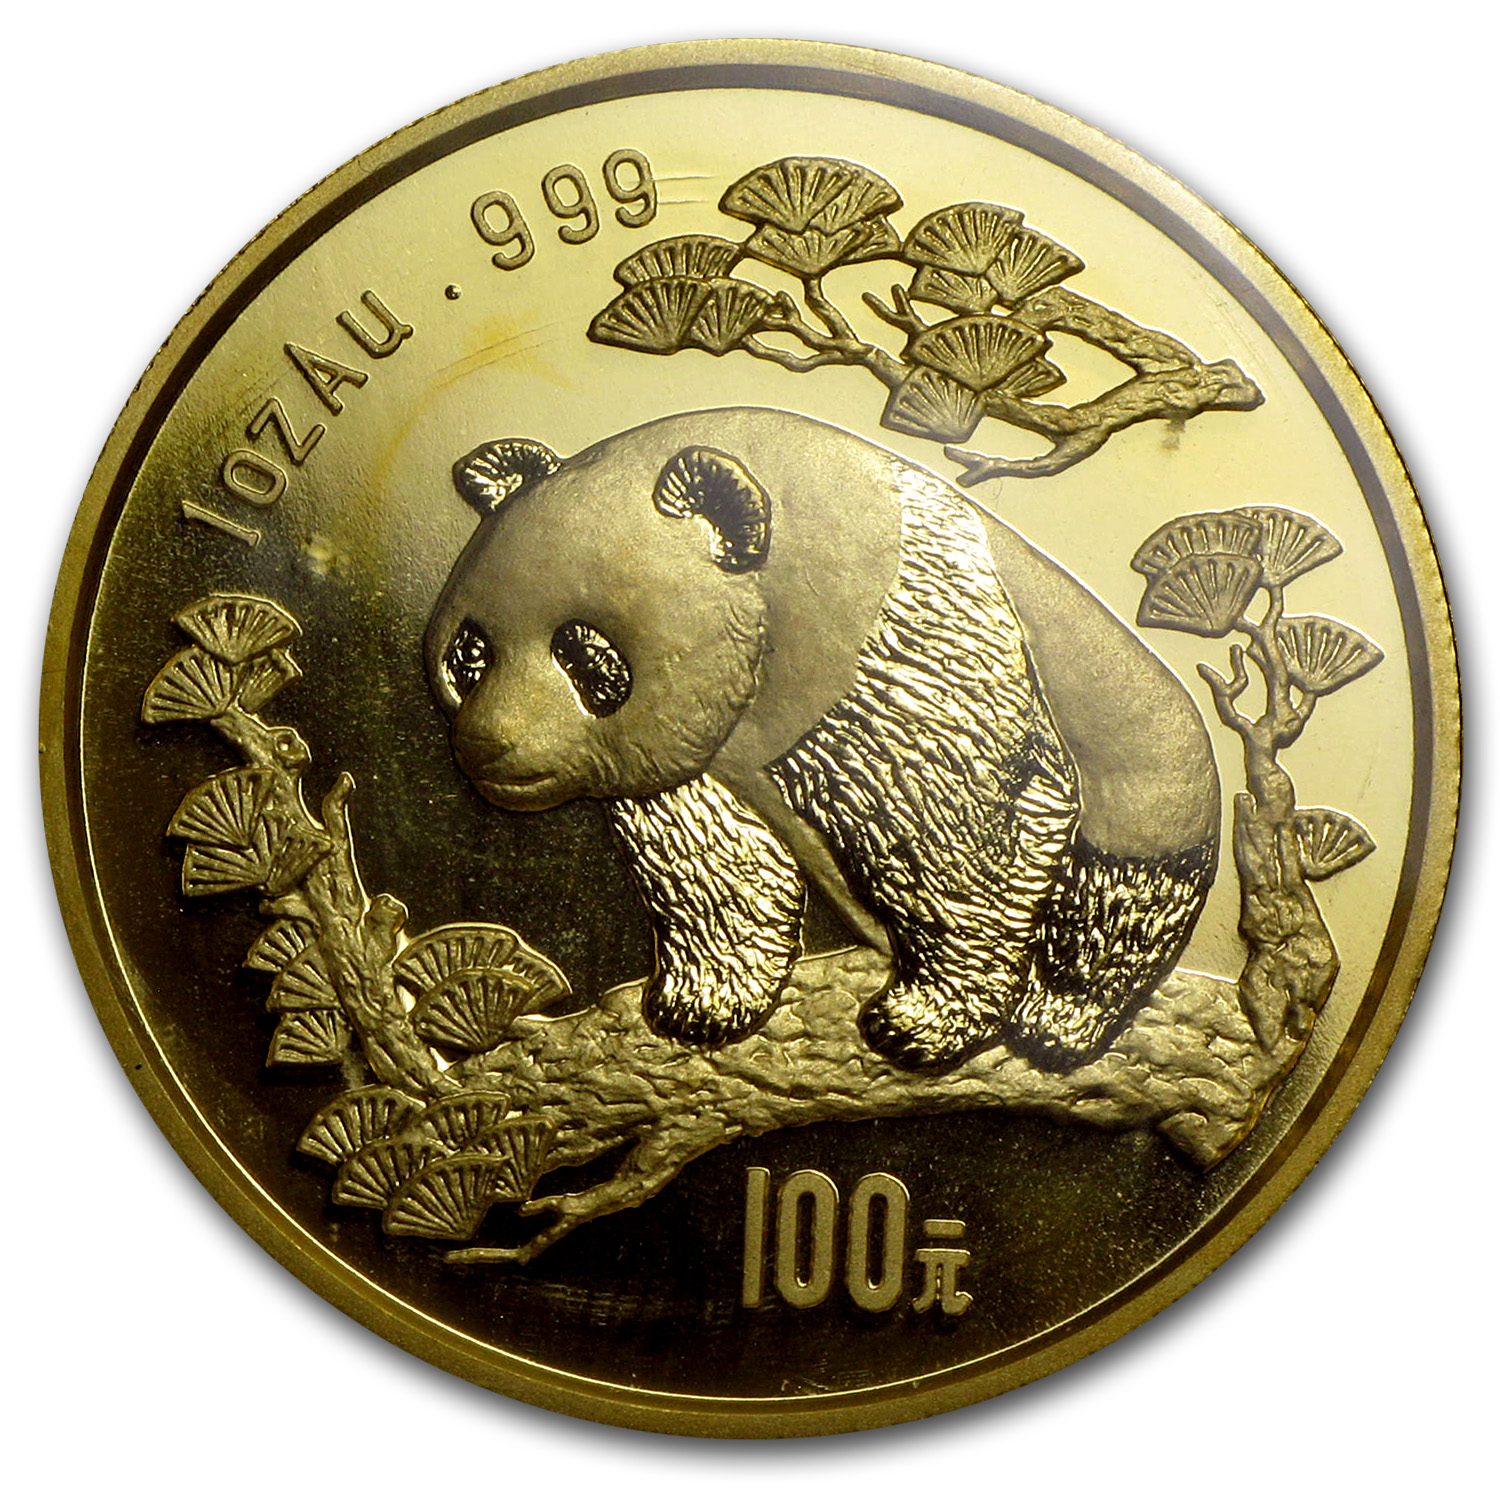 1997 1 oz Gold Chinese Panda Large Date BU (Sealed)